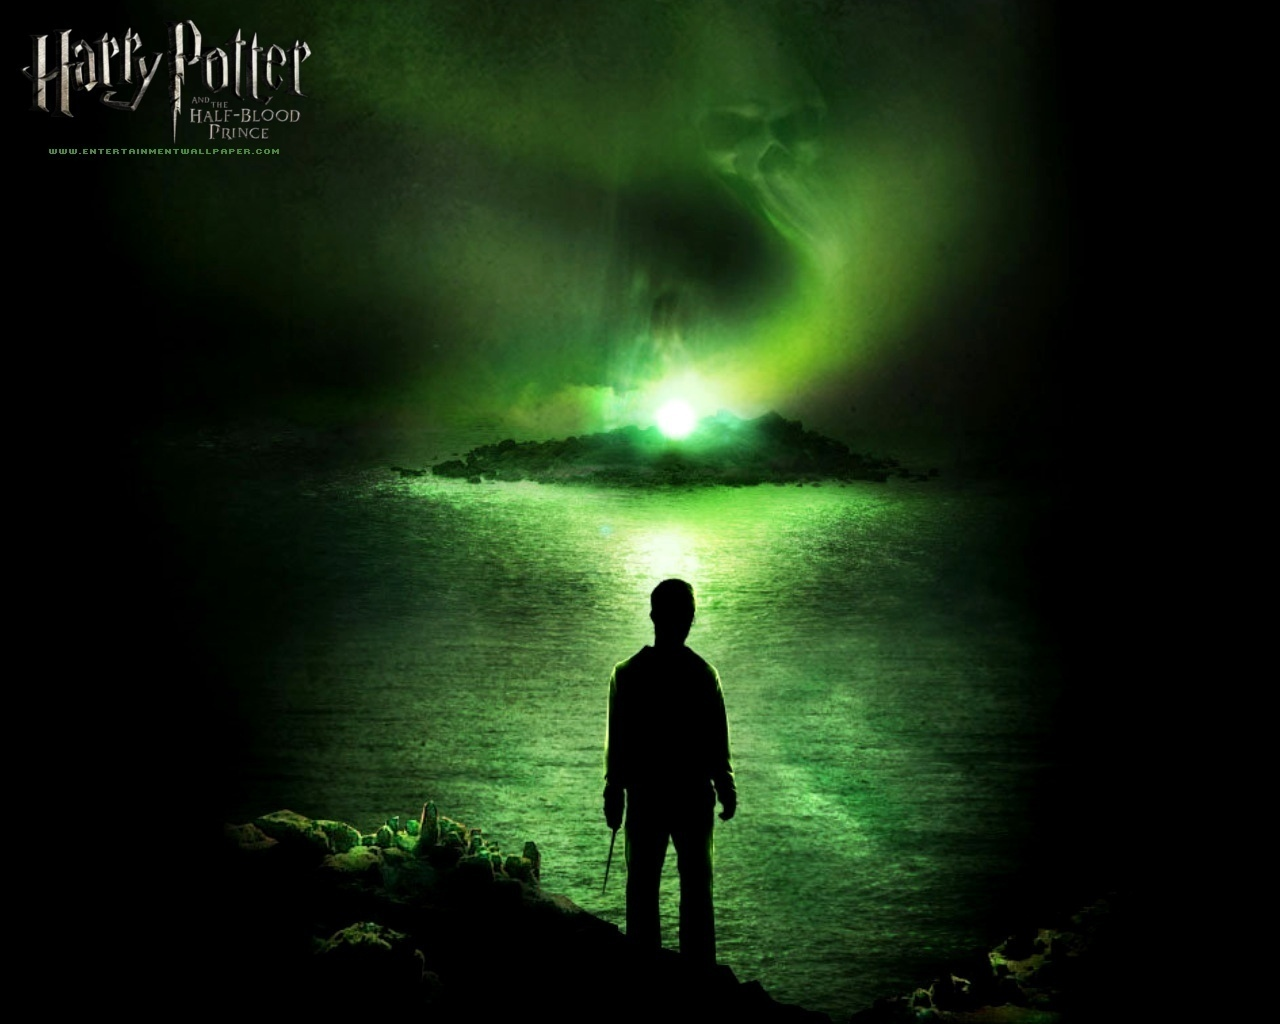 harry potter and lord voldemort images harry potter and lord